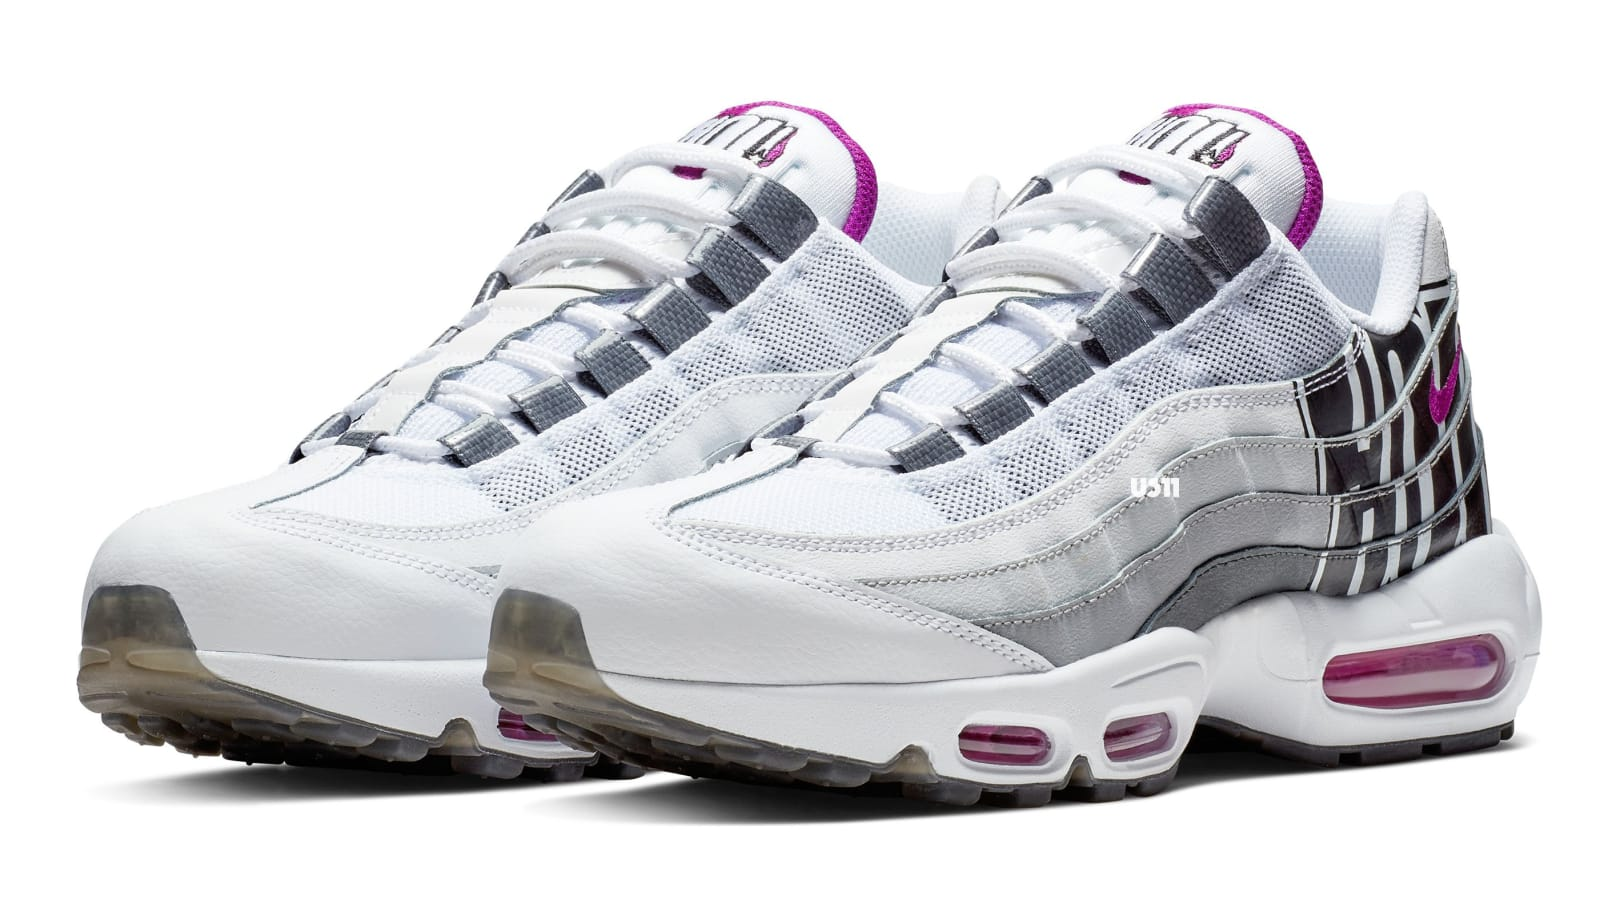 """new arrivals 2744e 0b6f7 Nike Releases Houston """"Home & Away"""" Air Max 95 [PHOTO ..."""